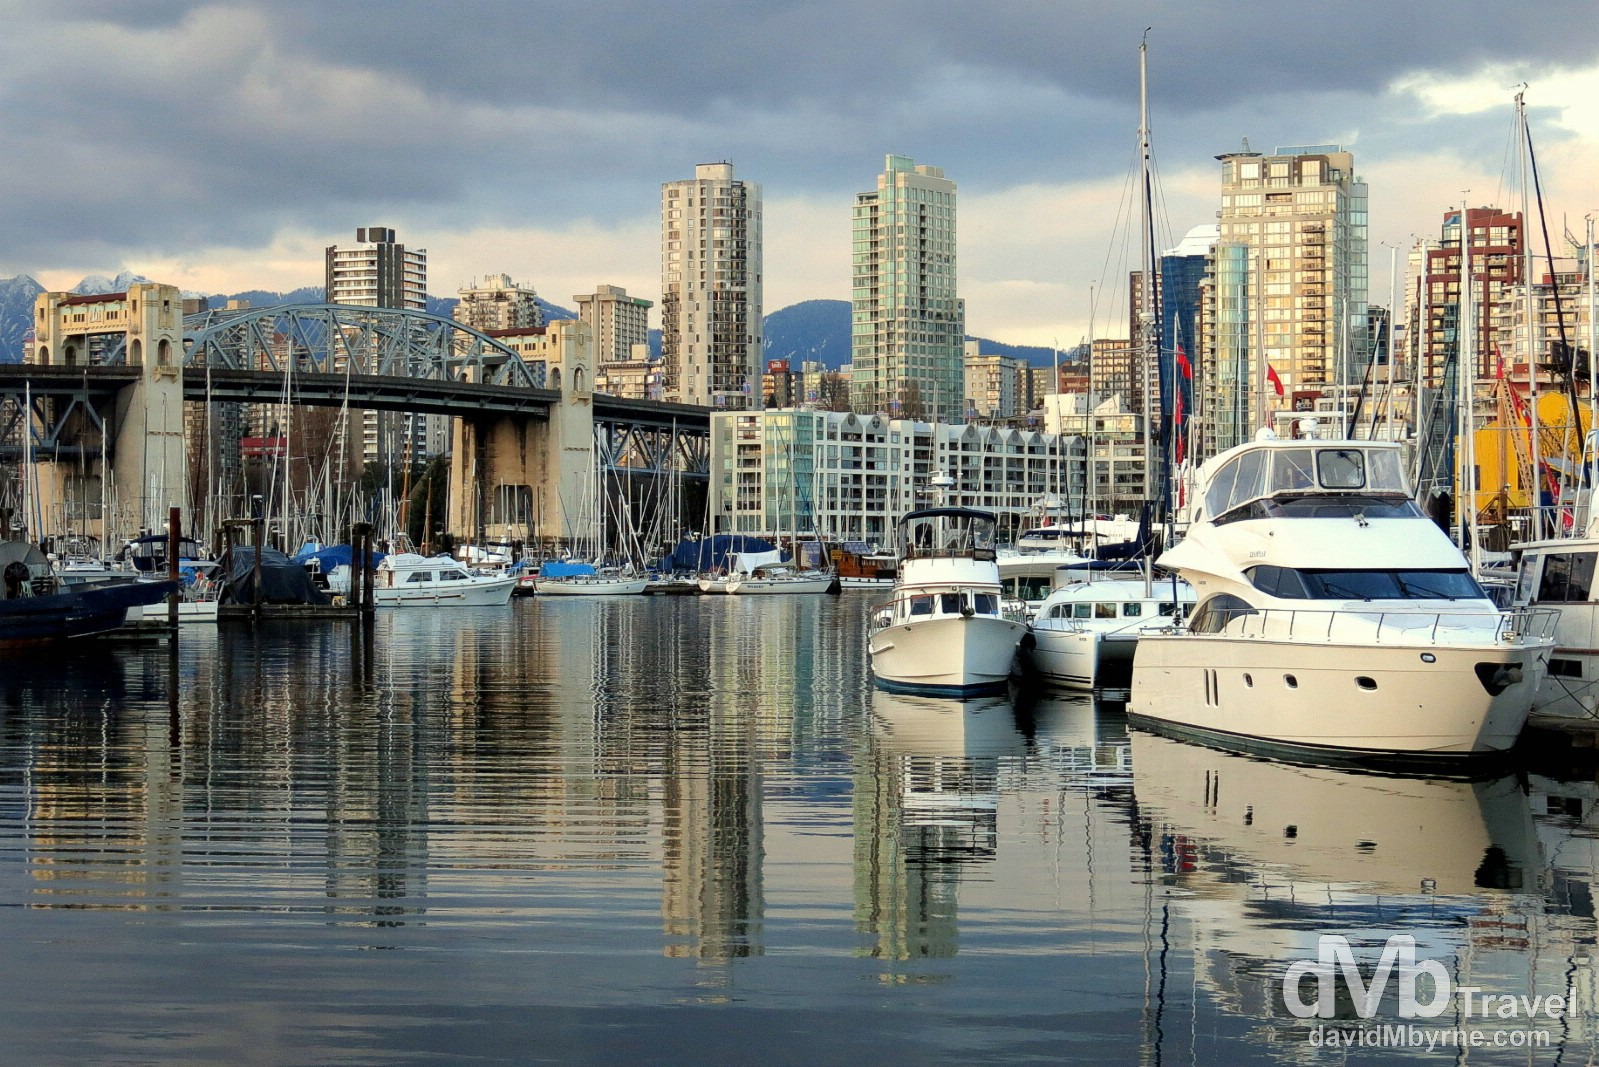 Burrard Civic Marina near Granville Island, Vancouver, British Columbia, Canada. March 23rd 2013.